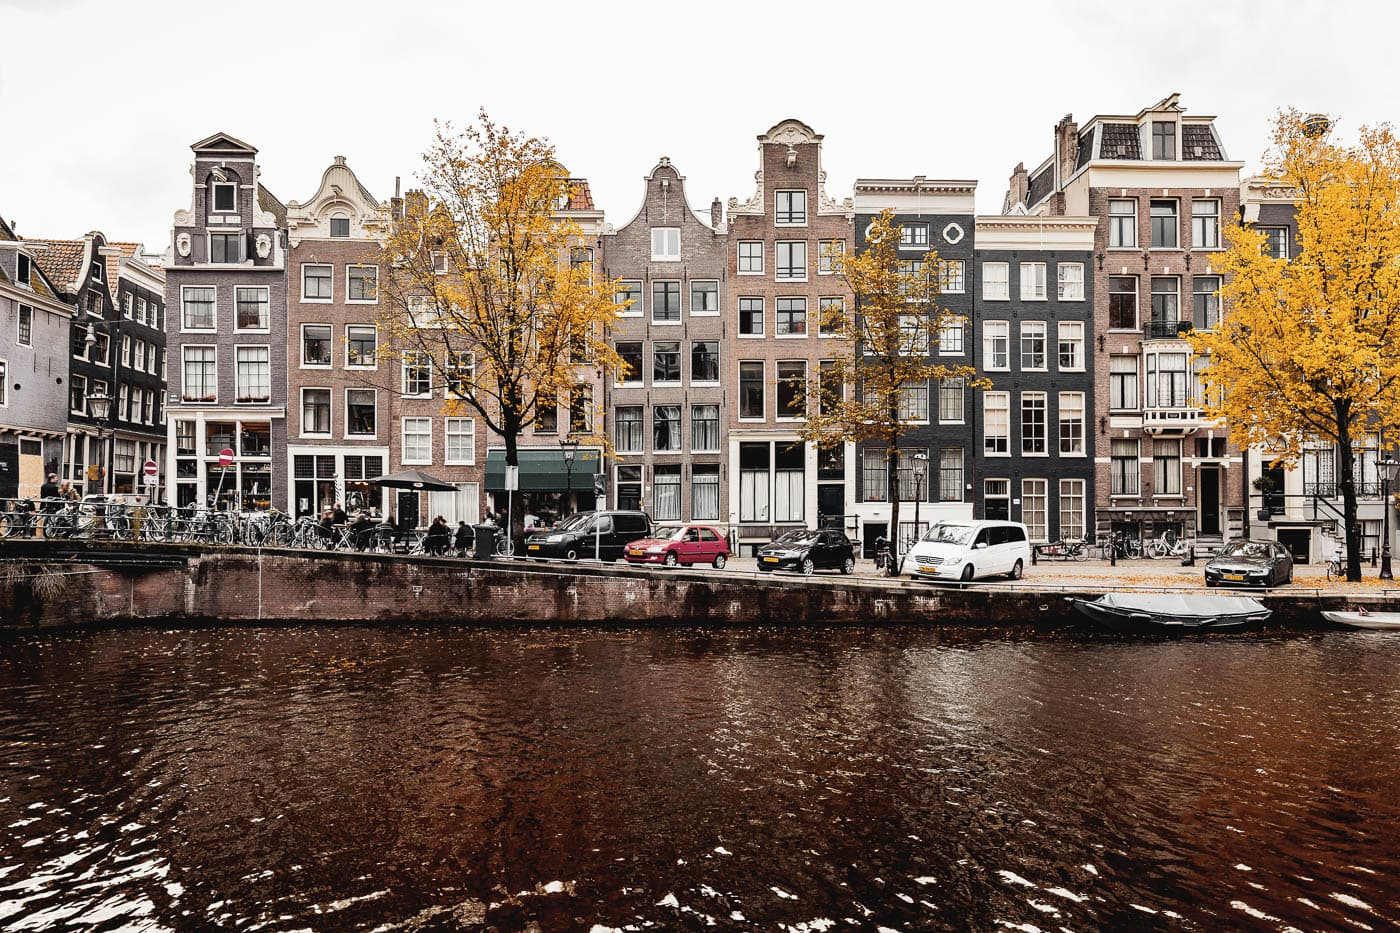 Singel Gracht in Amsterdam, Netherlands